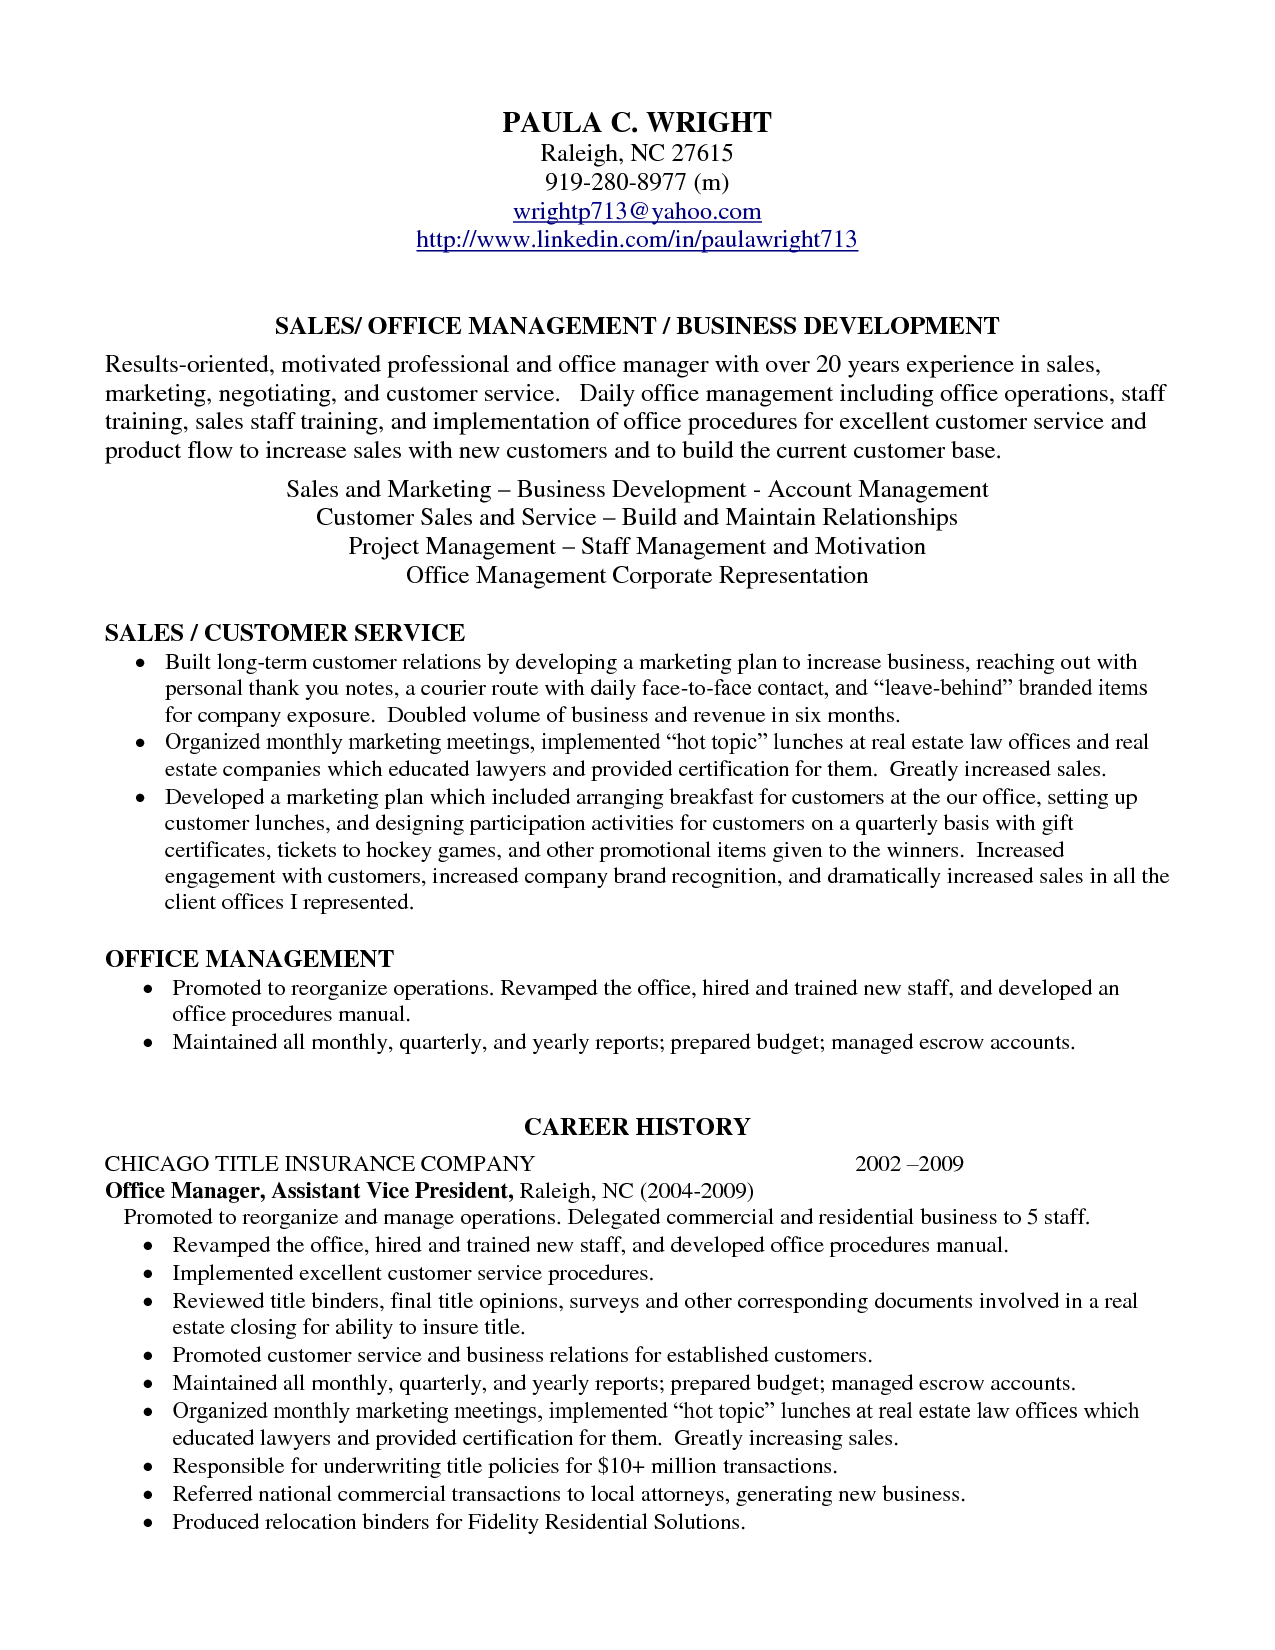 How To Write A Professional Resume For A Job Professional Profile Resume Examples Resume Professional